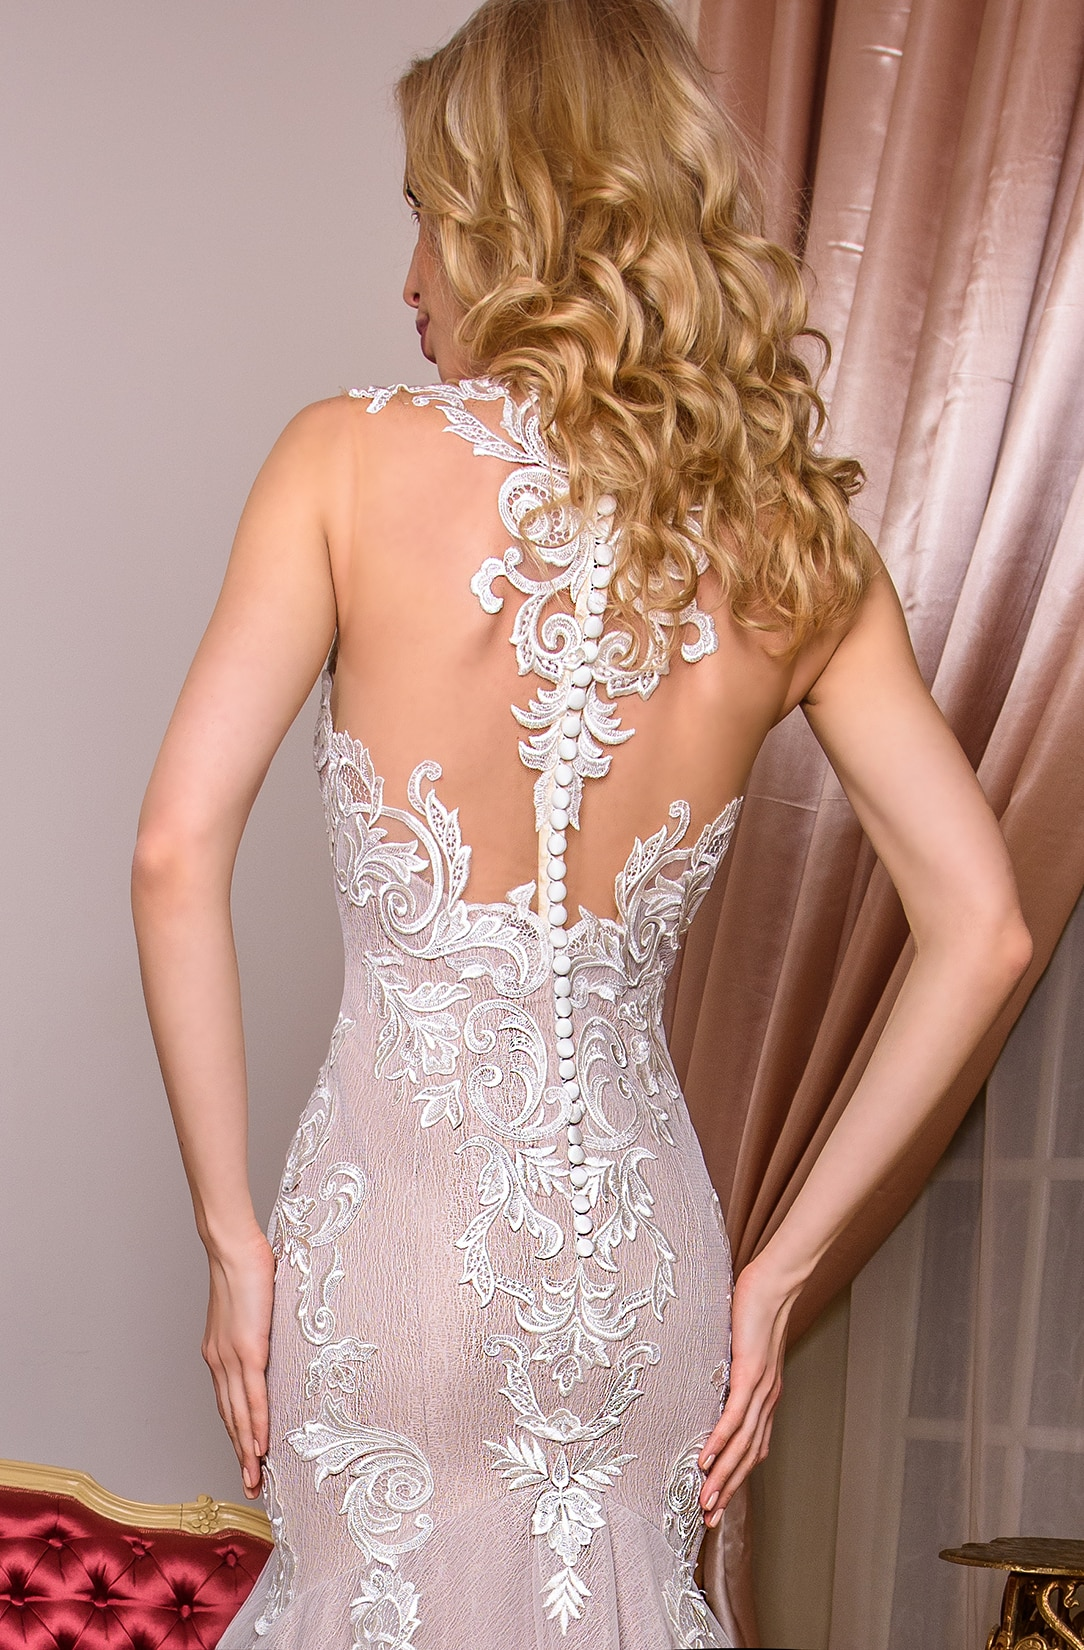 Nancy Model - Colectia Baroque - Adora Sposa (3)